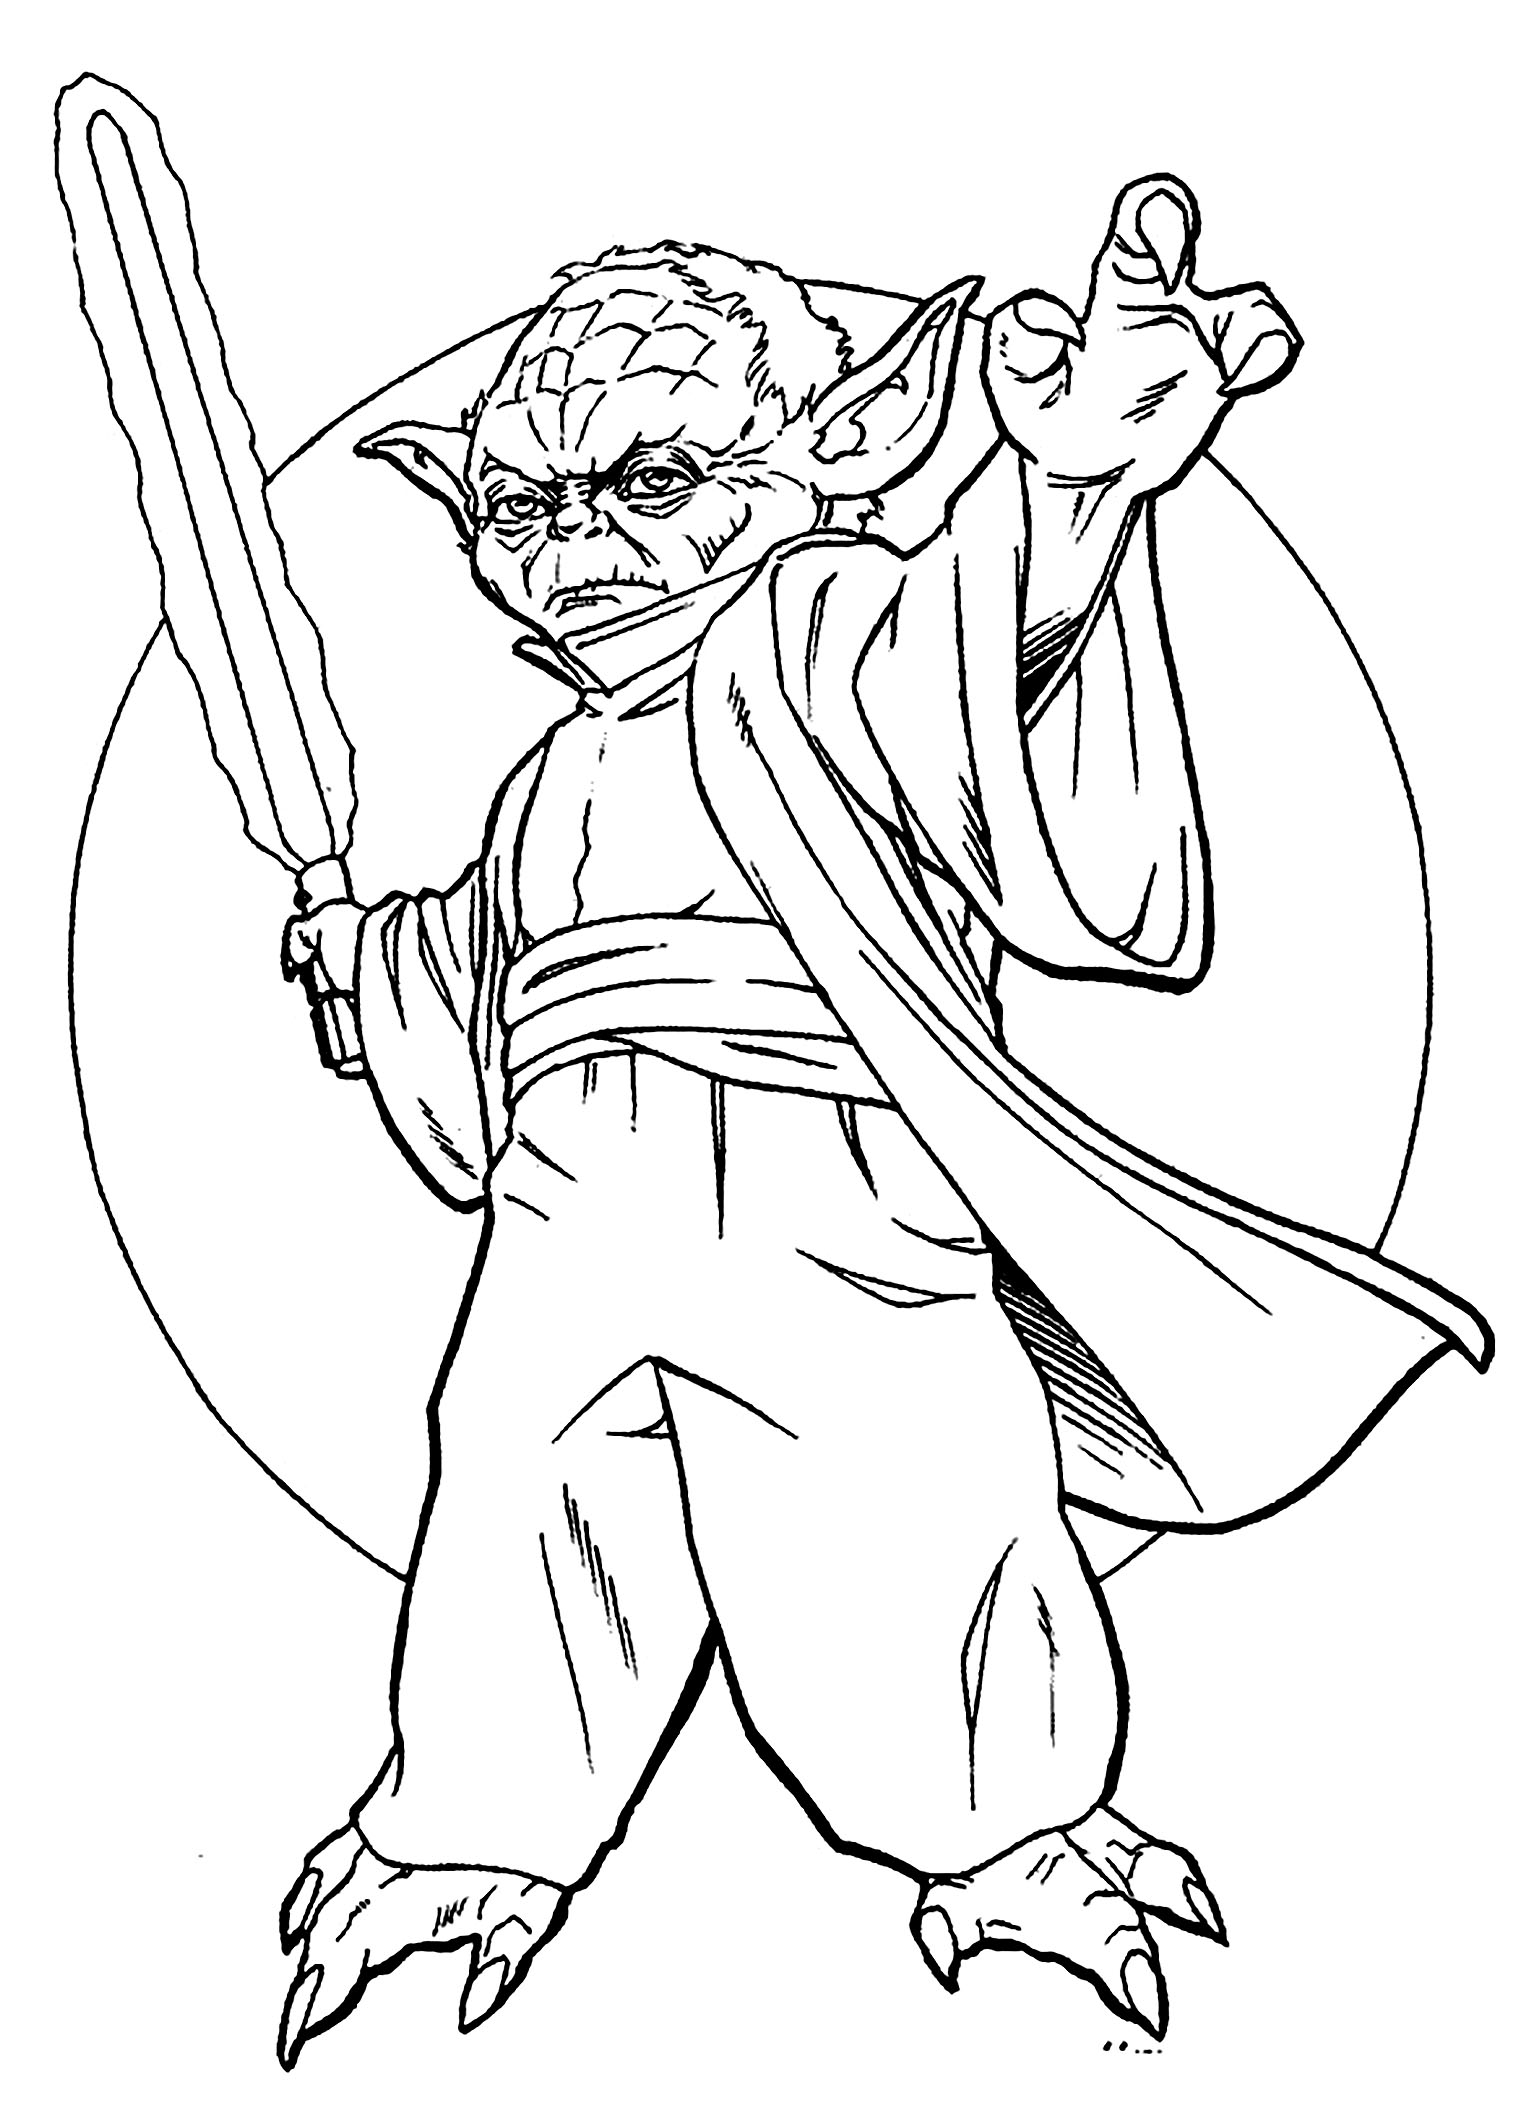 star wars pictures to color star wars pictures to color pictures wars star to color